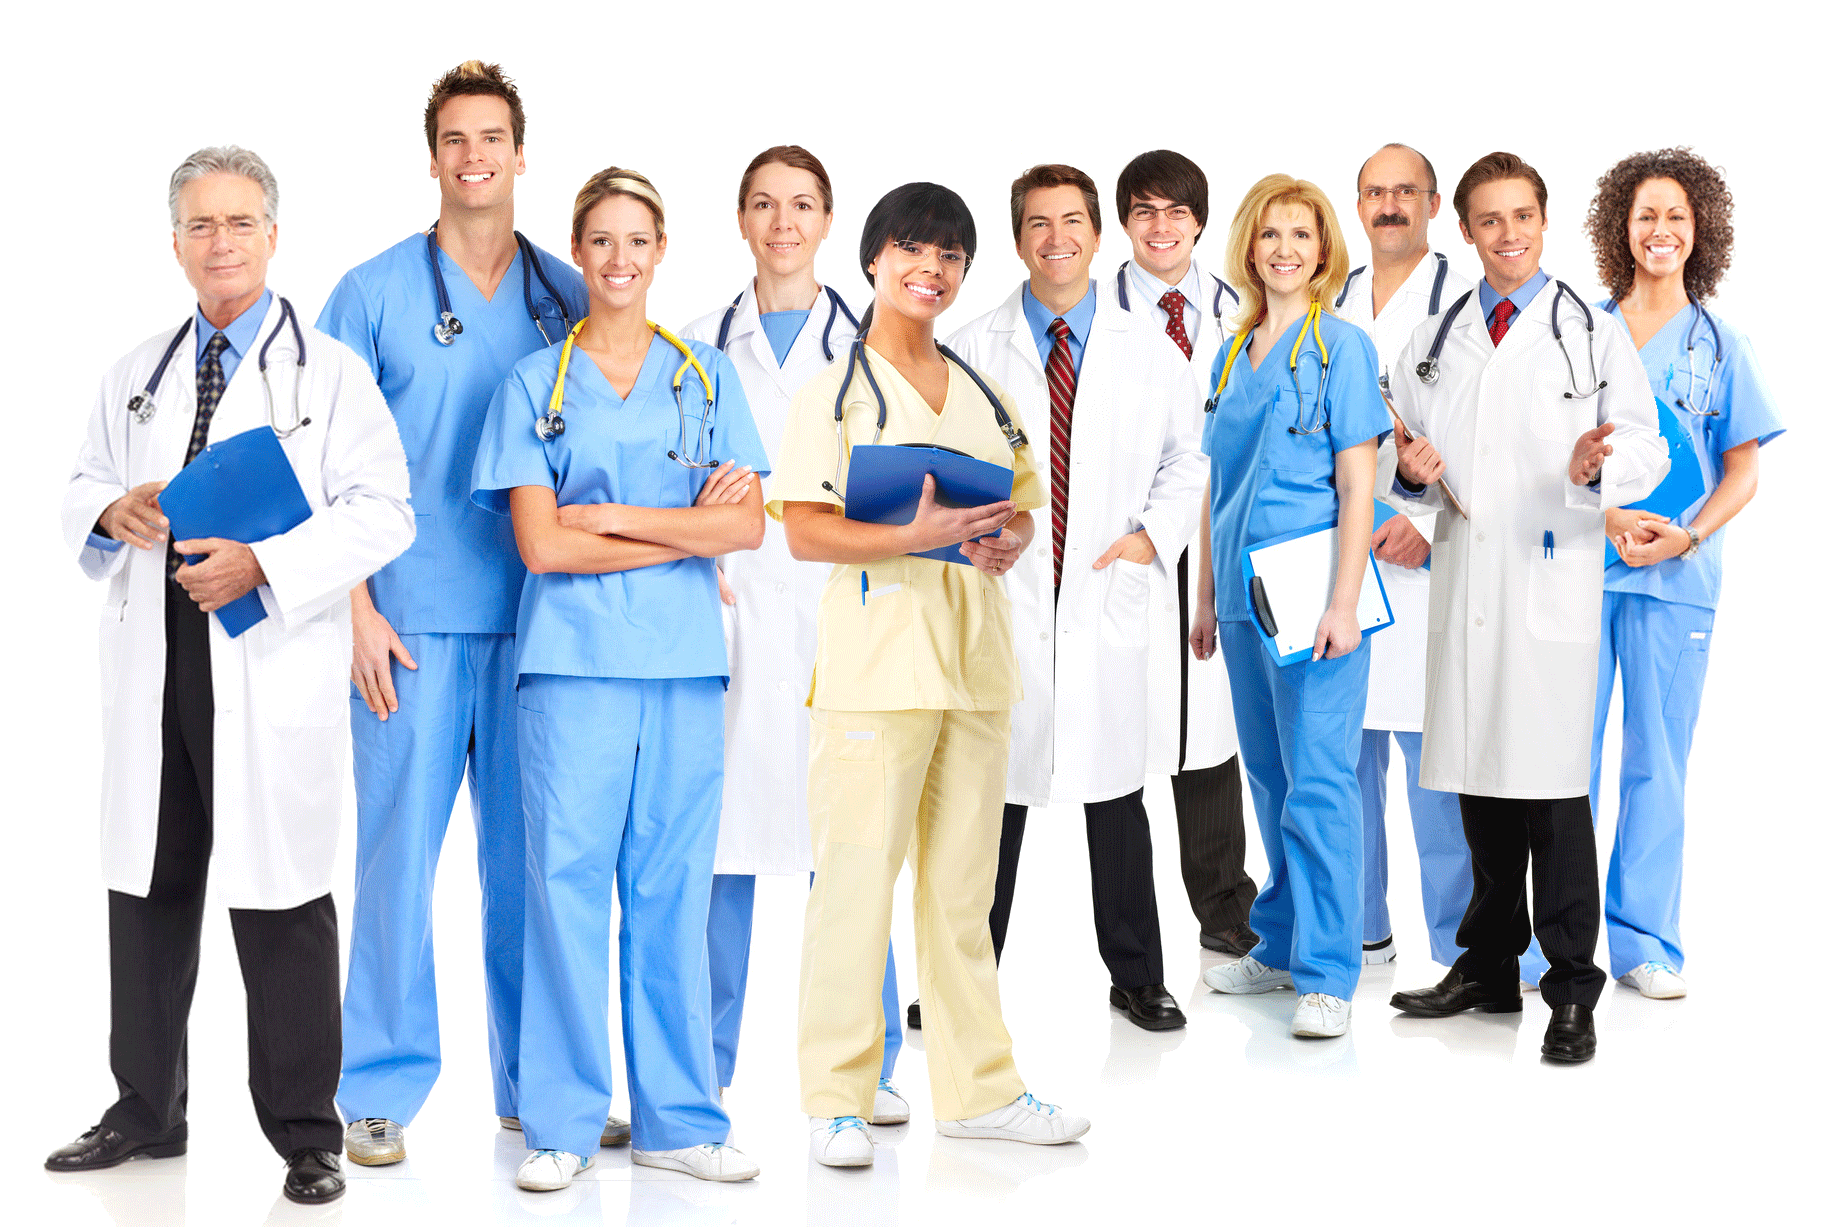 Most Popular Upcoming Healthcare Jobs In 2014. Utah Auto Insurance Quote Business Loan Terms. Crime & Investigation Network. Heavy Bleeding And Blood Clots. Bishop Foley Catholic High School. Alexandria Flower Shops New York Satellite Tv. San Diego Web Design Company. Best Cd Rates In Washington State. Bookkeeping Training Courses A V C College